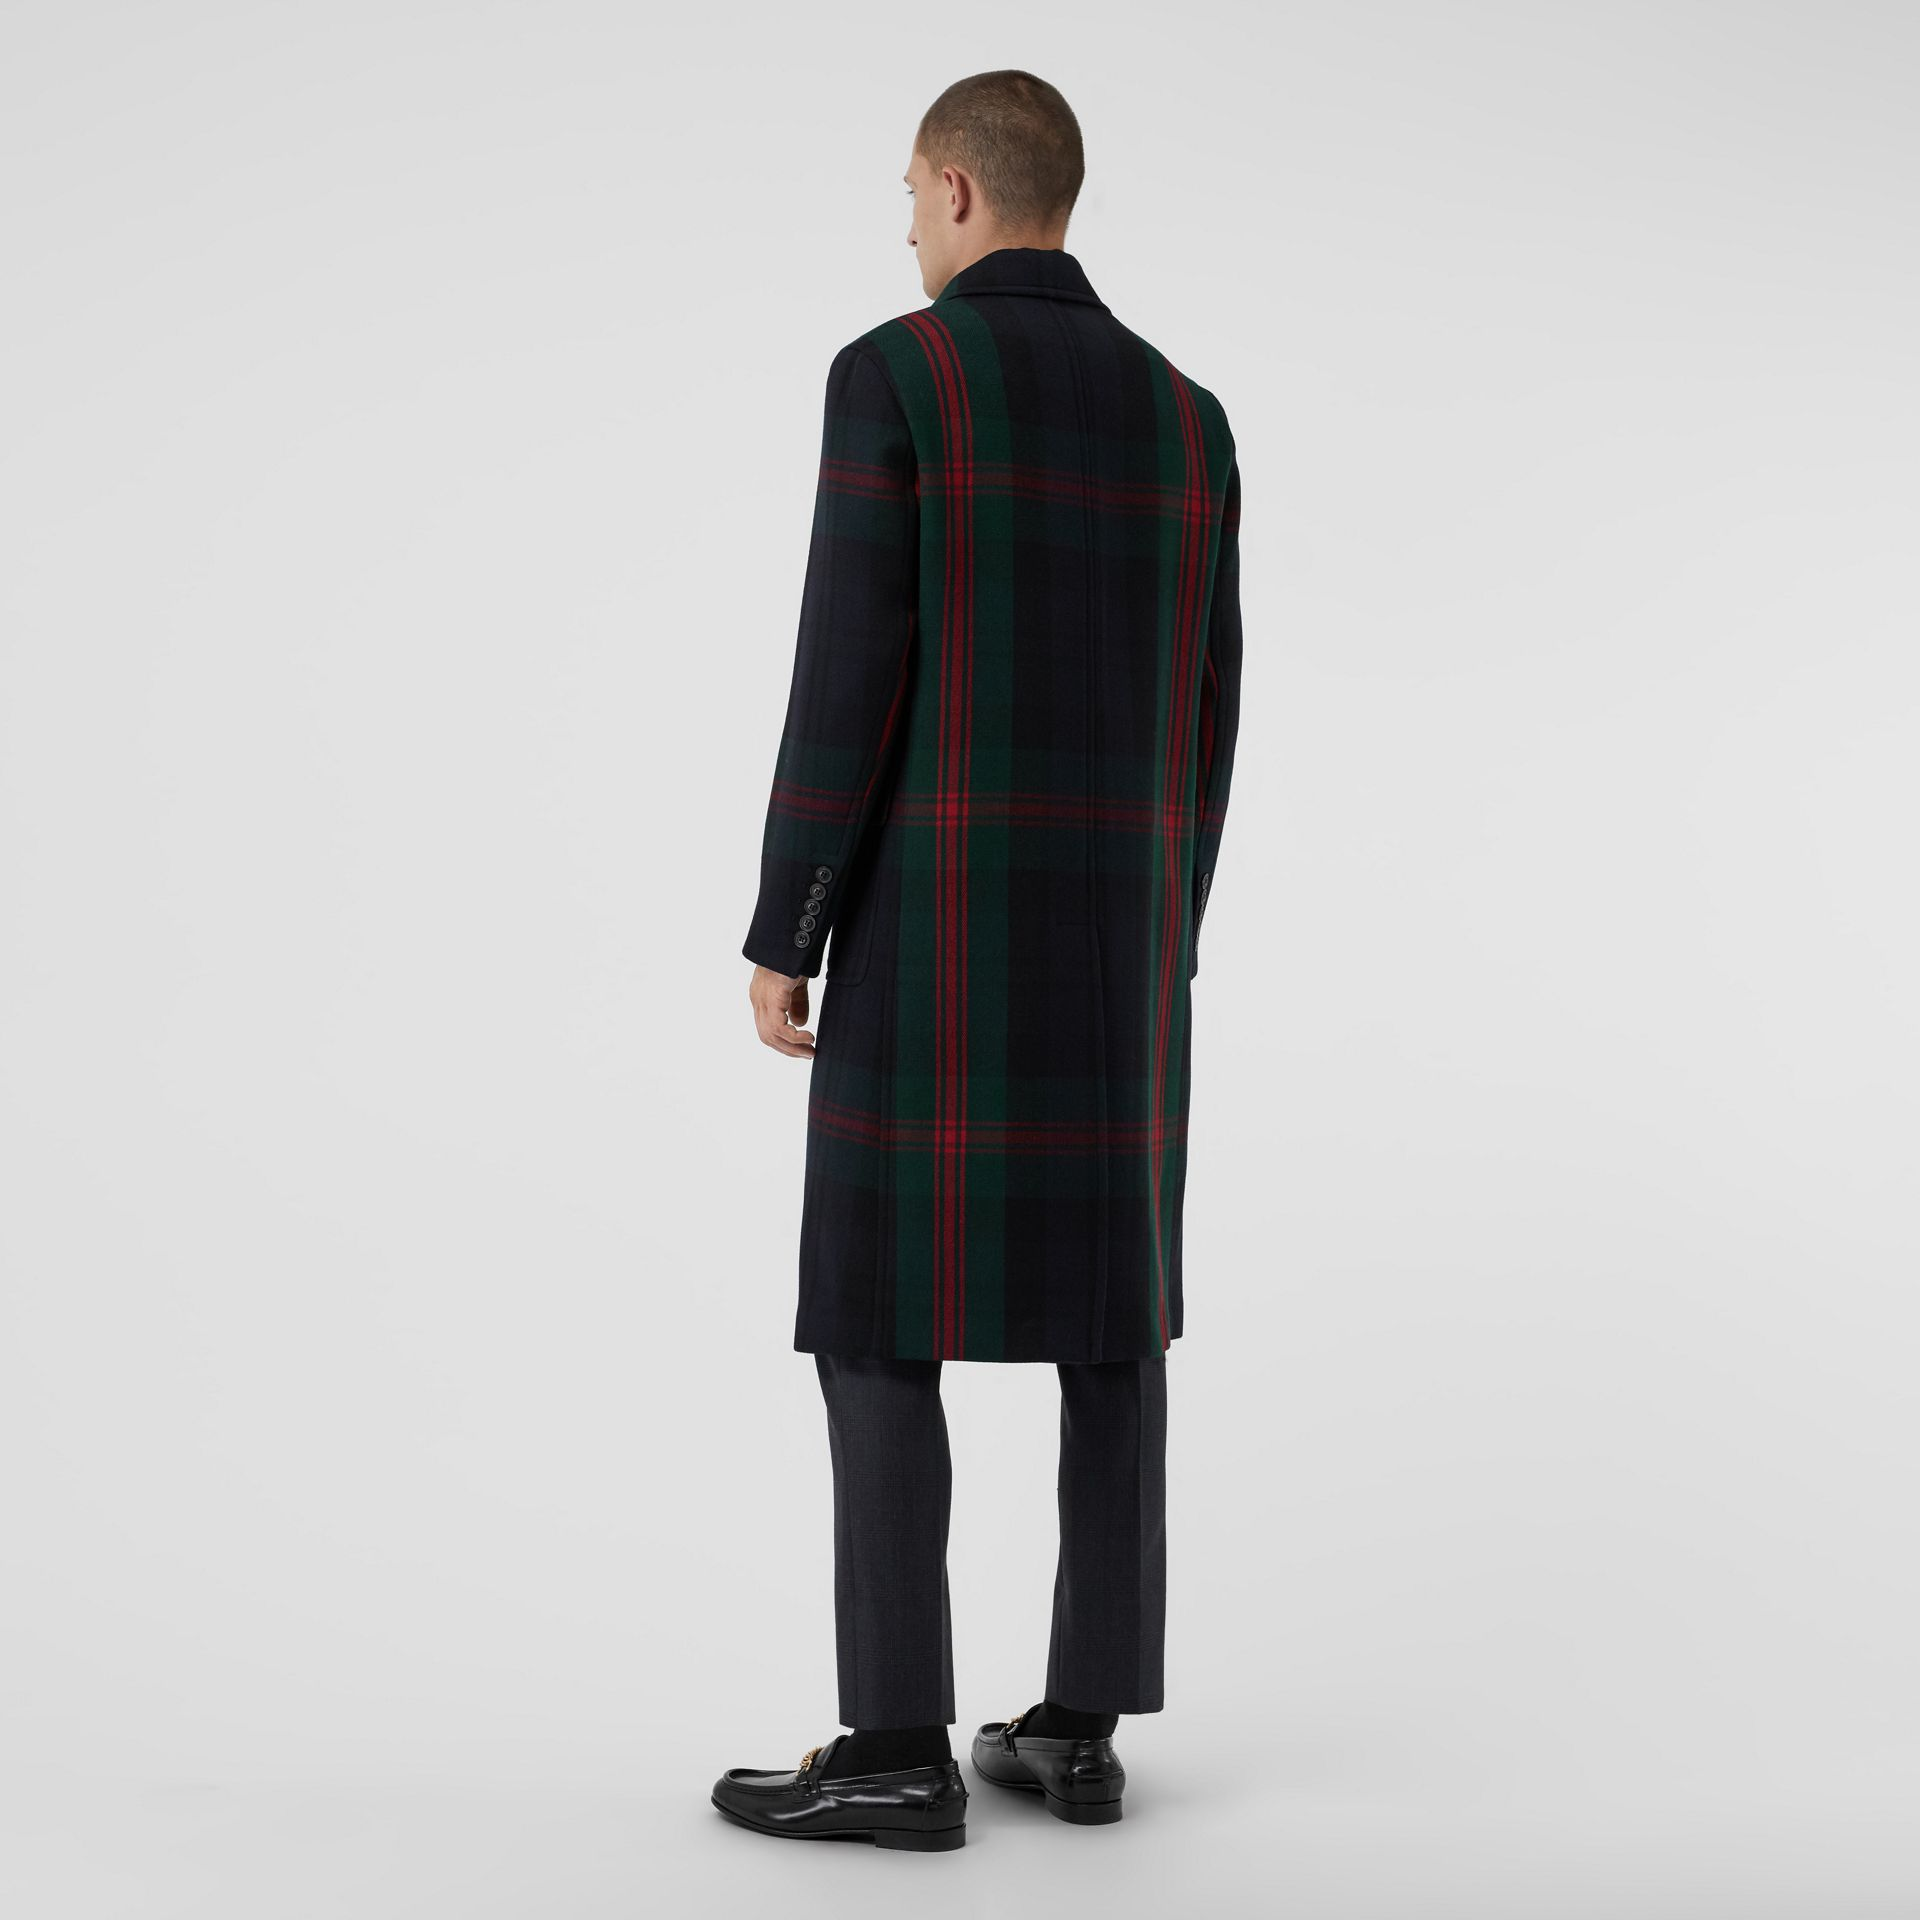 Tartan Wool Mohair Blend Tailored Coat in Navy Check - Men | Burberry - gallery image 2